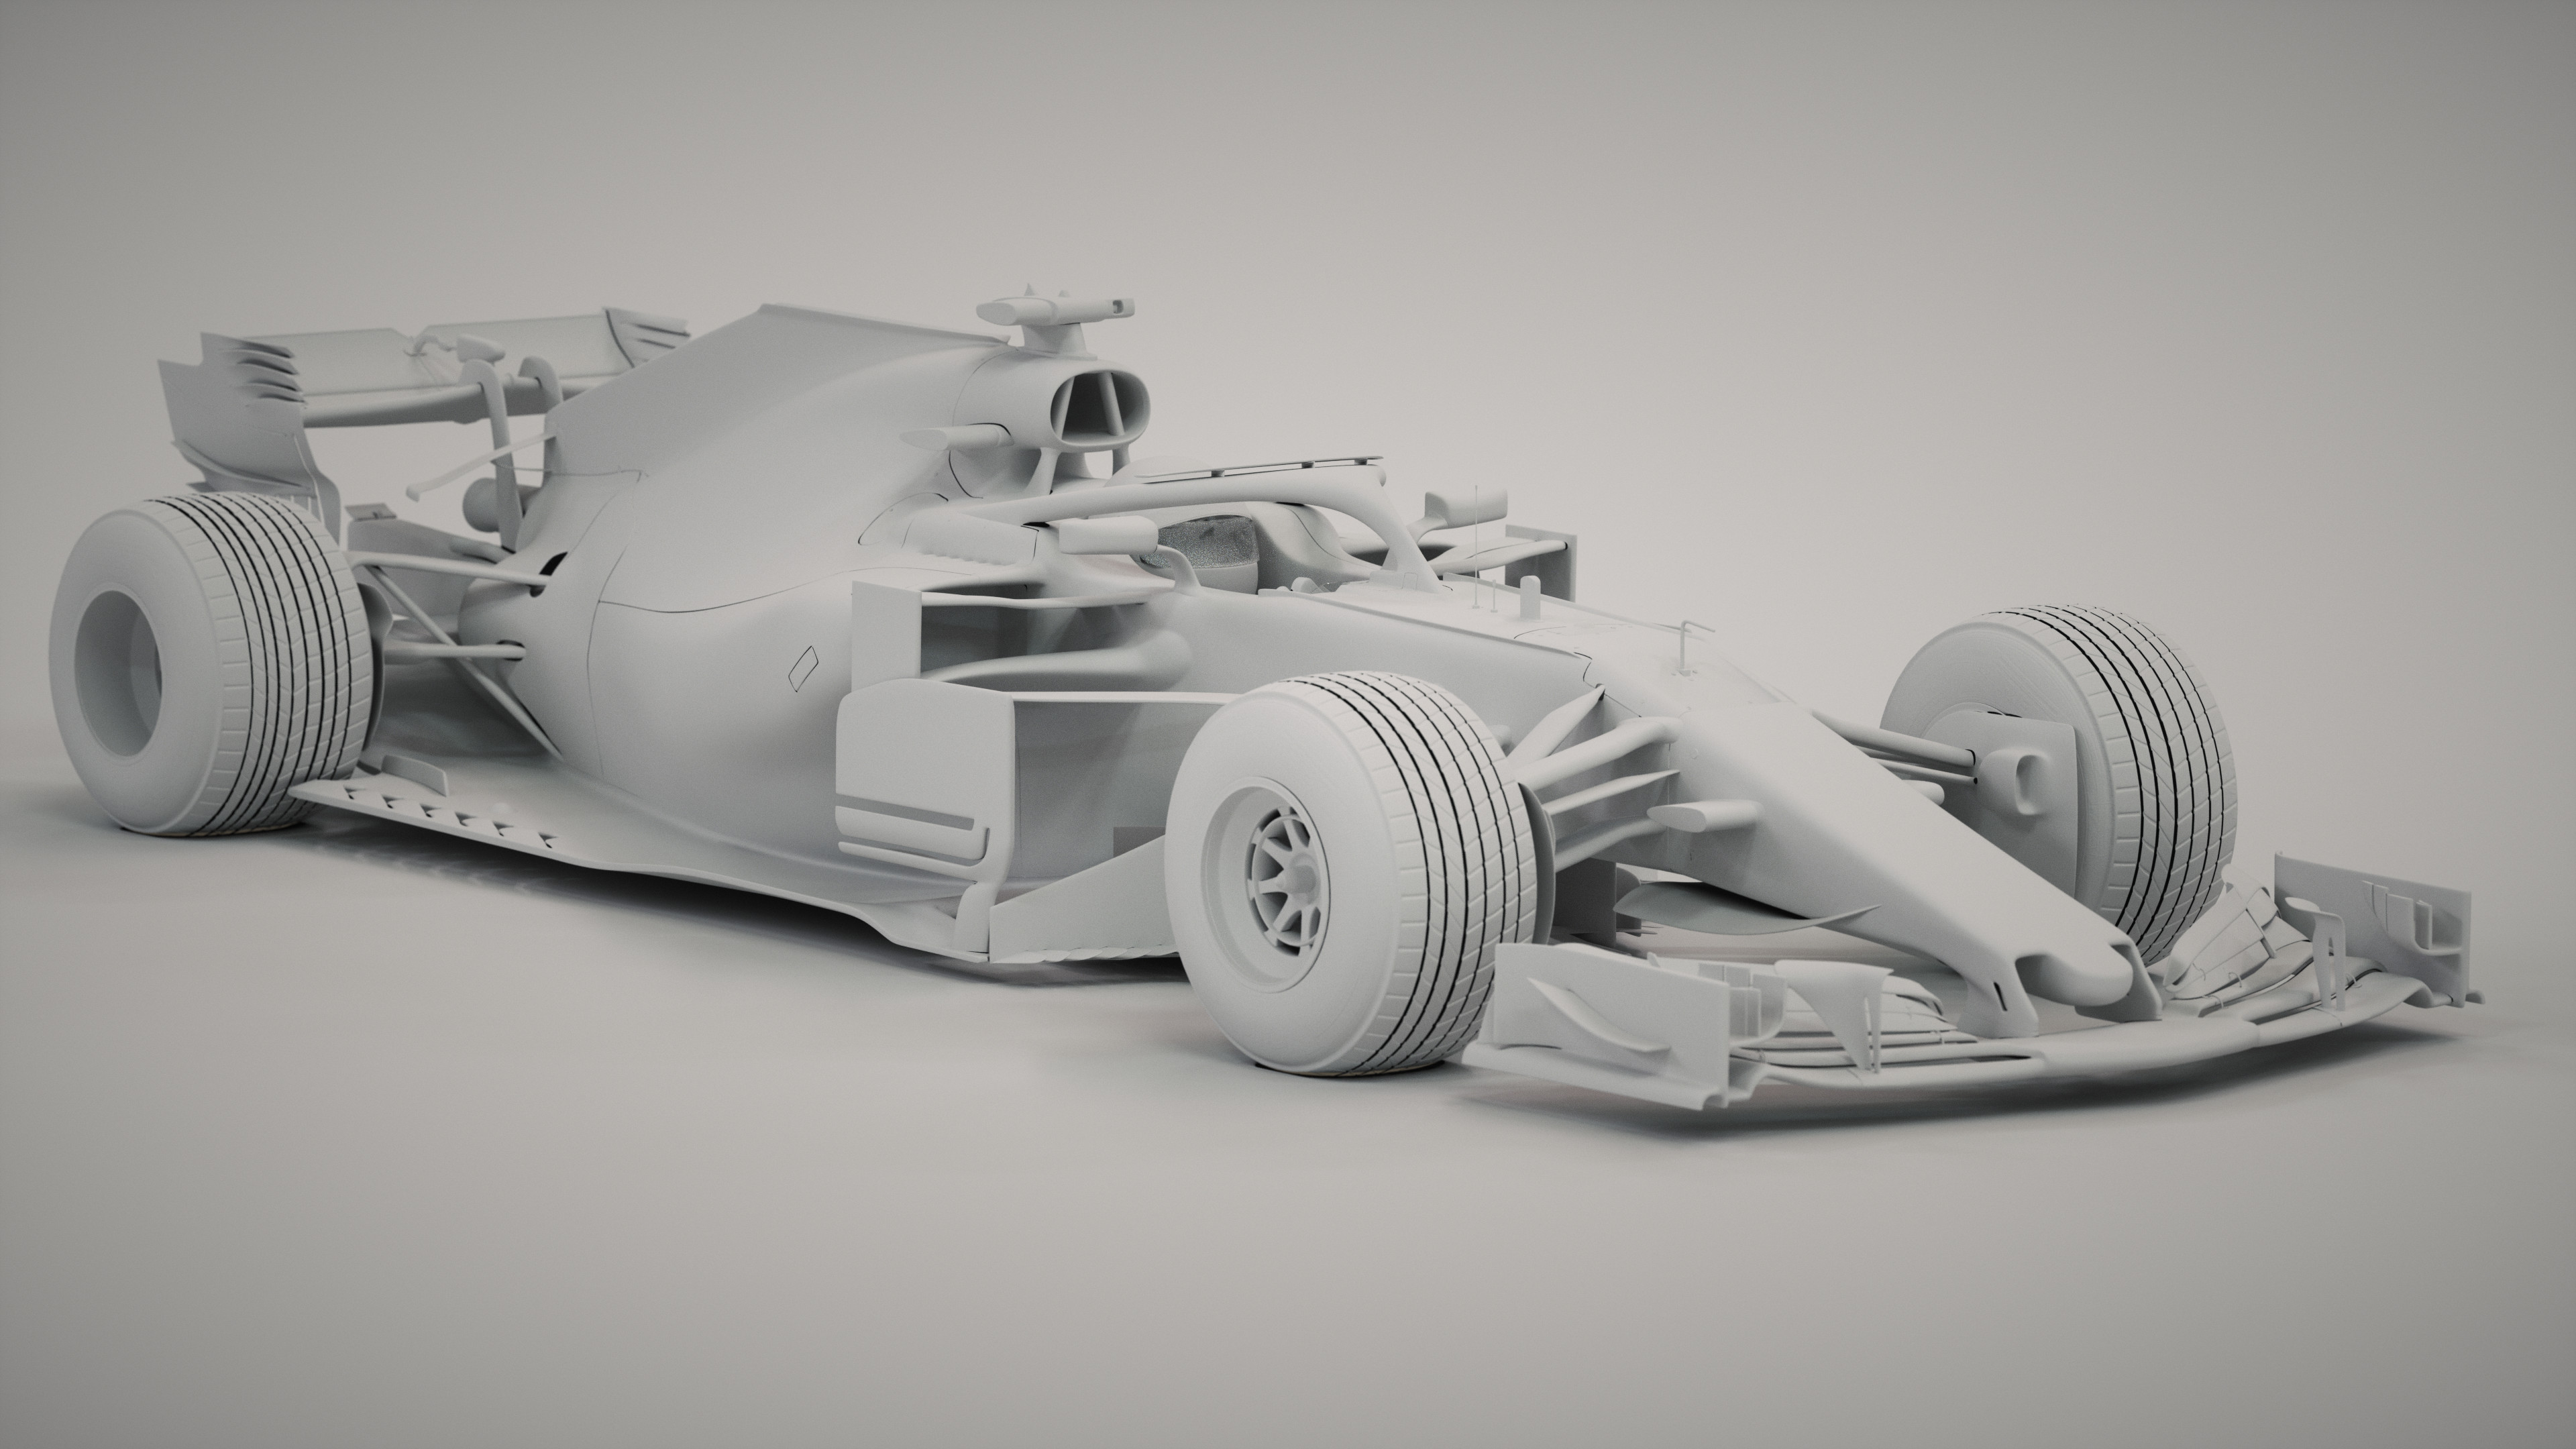 Williams FW41 car render challenge 2019